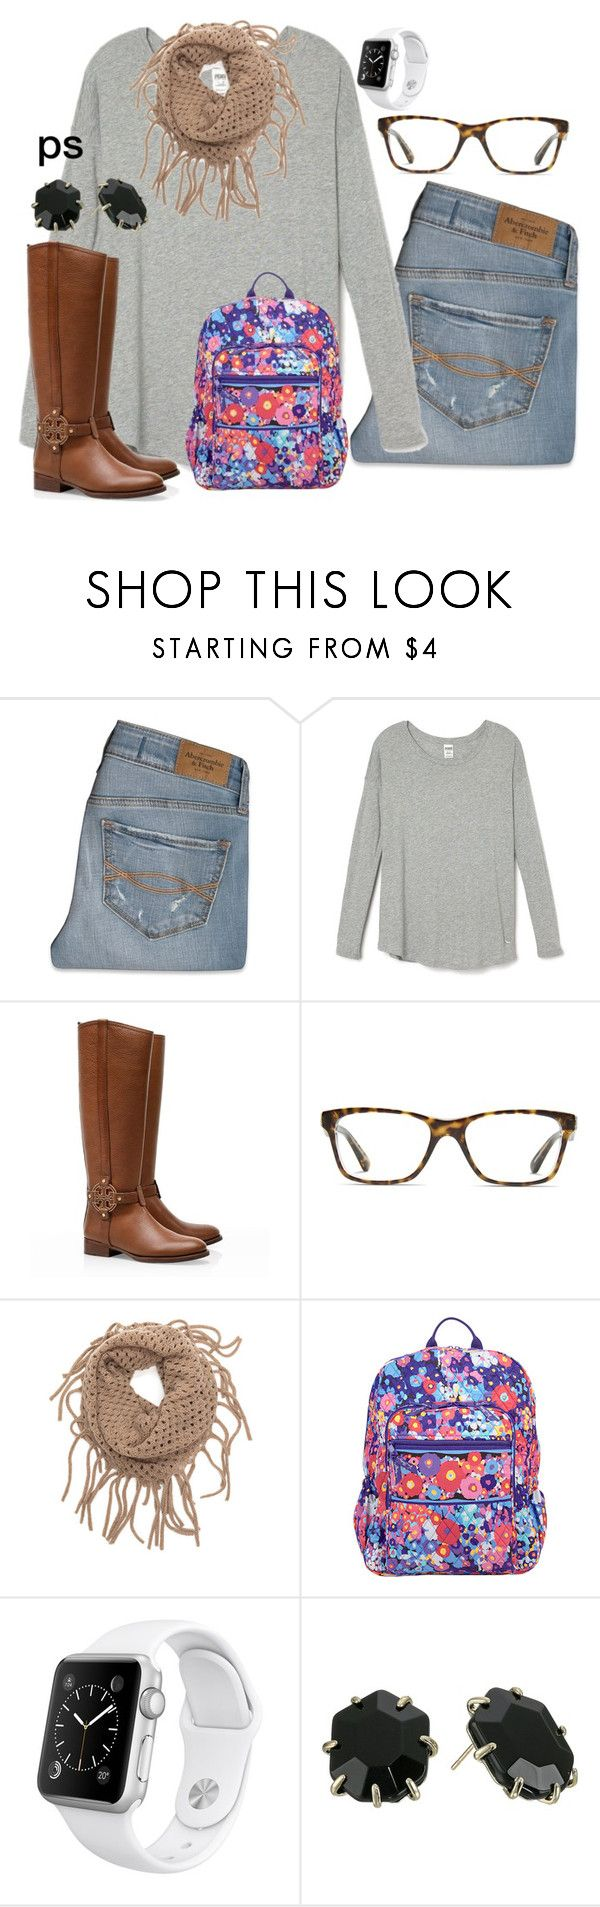 """ootd"" by prep-society ❤ liked on Polyvore featuring Abercrombie & Fitch, Tory Burch, GlassesUSA, Vera Bradley, Kendra Scott, women's clothing, women's fashion, women, female and woman"